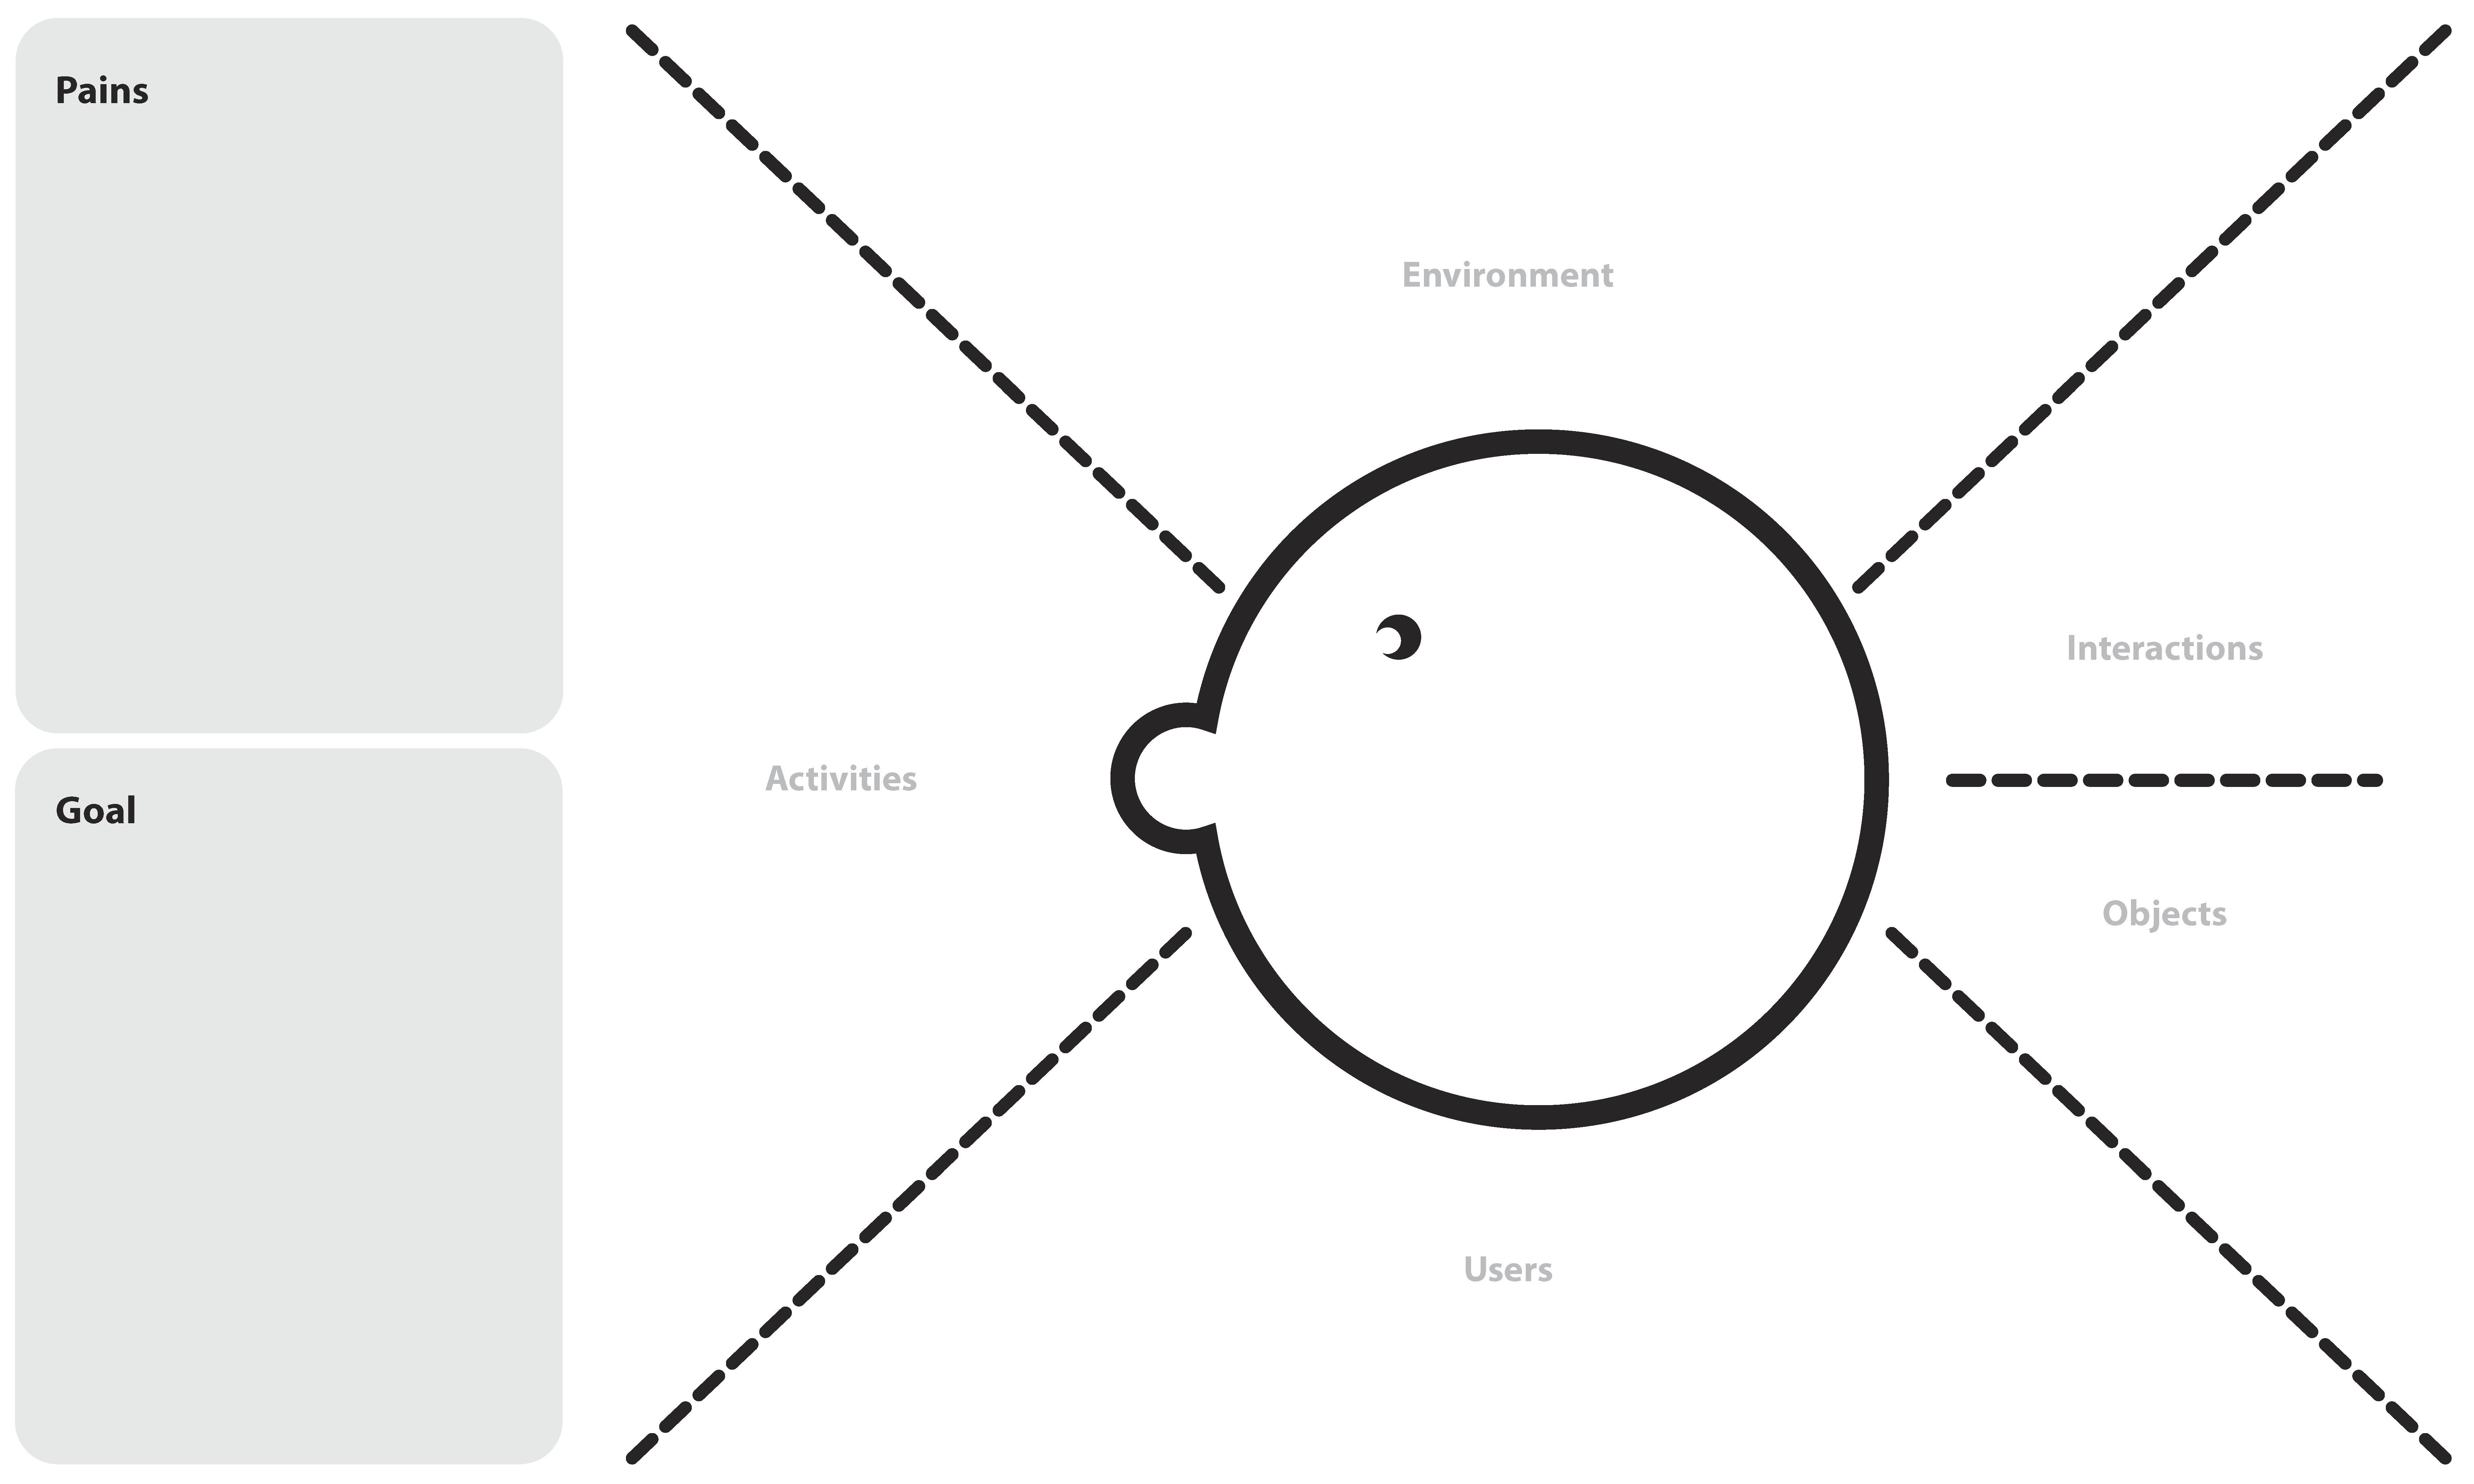 AEIOU Empathy Map https://www.creatlr.com/template/1knjaTEkdFHvtBOLr8DAx/aeiou-empathy-map/